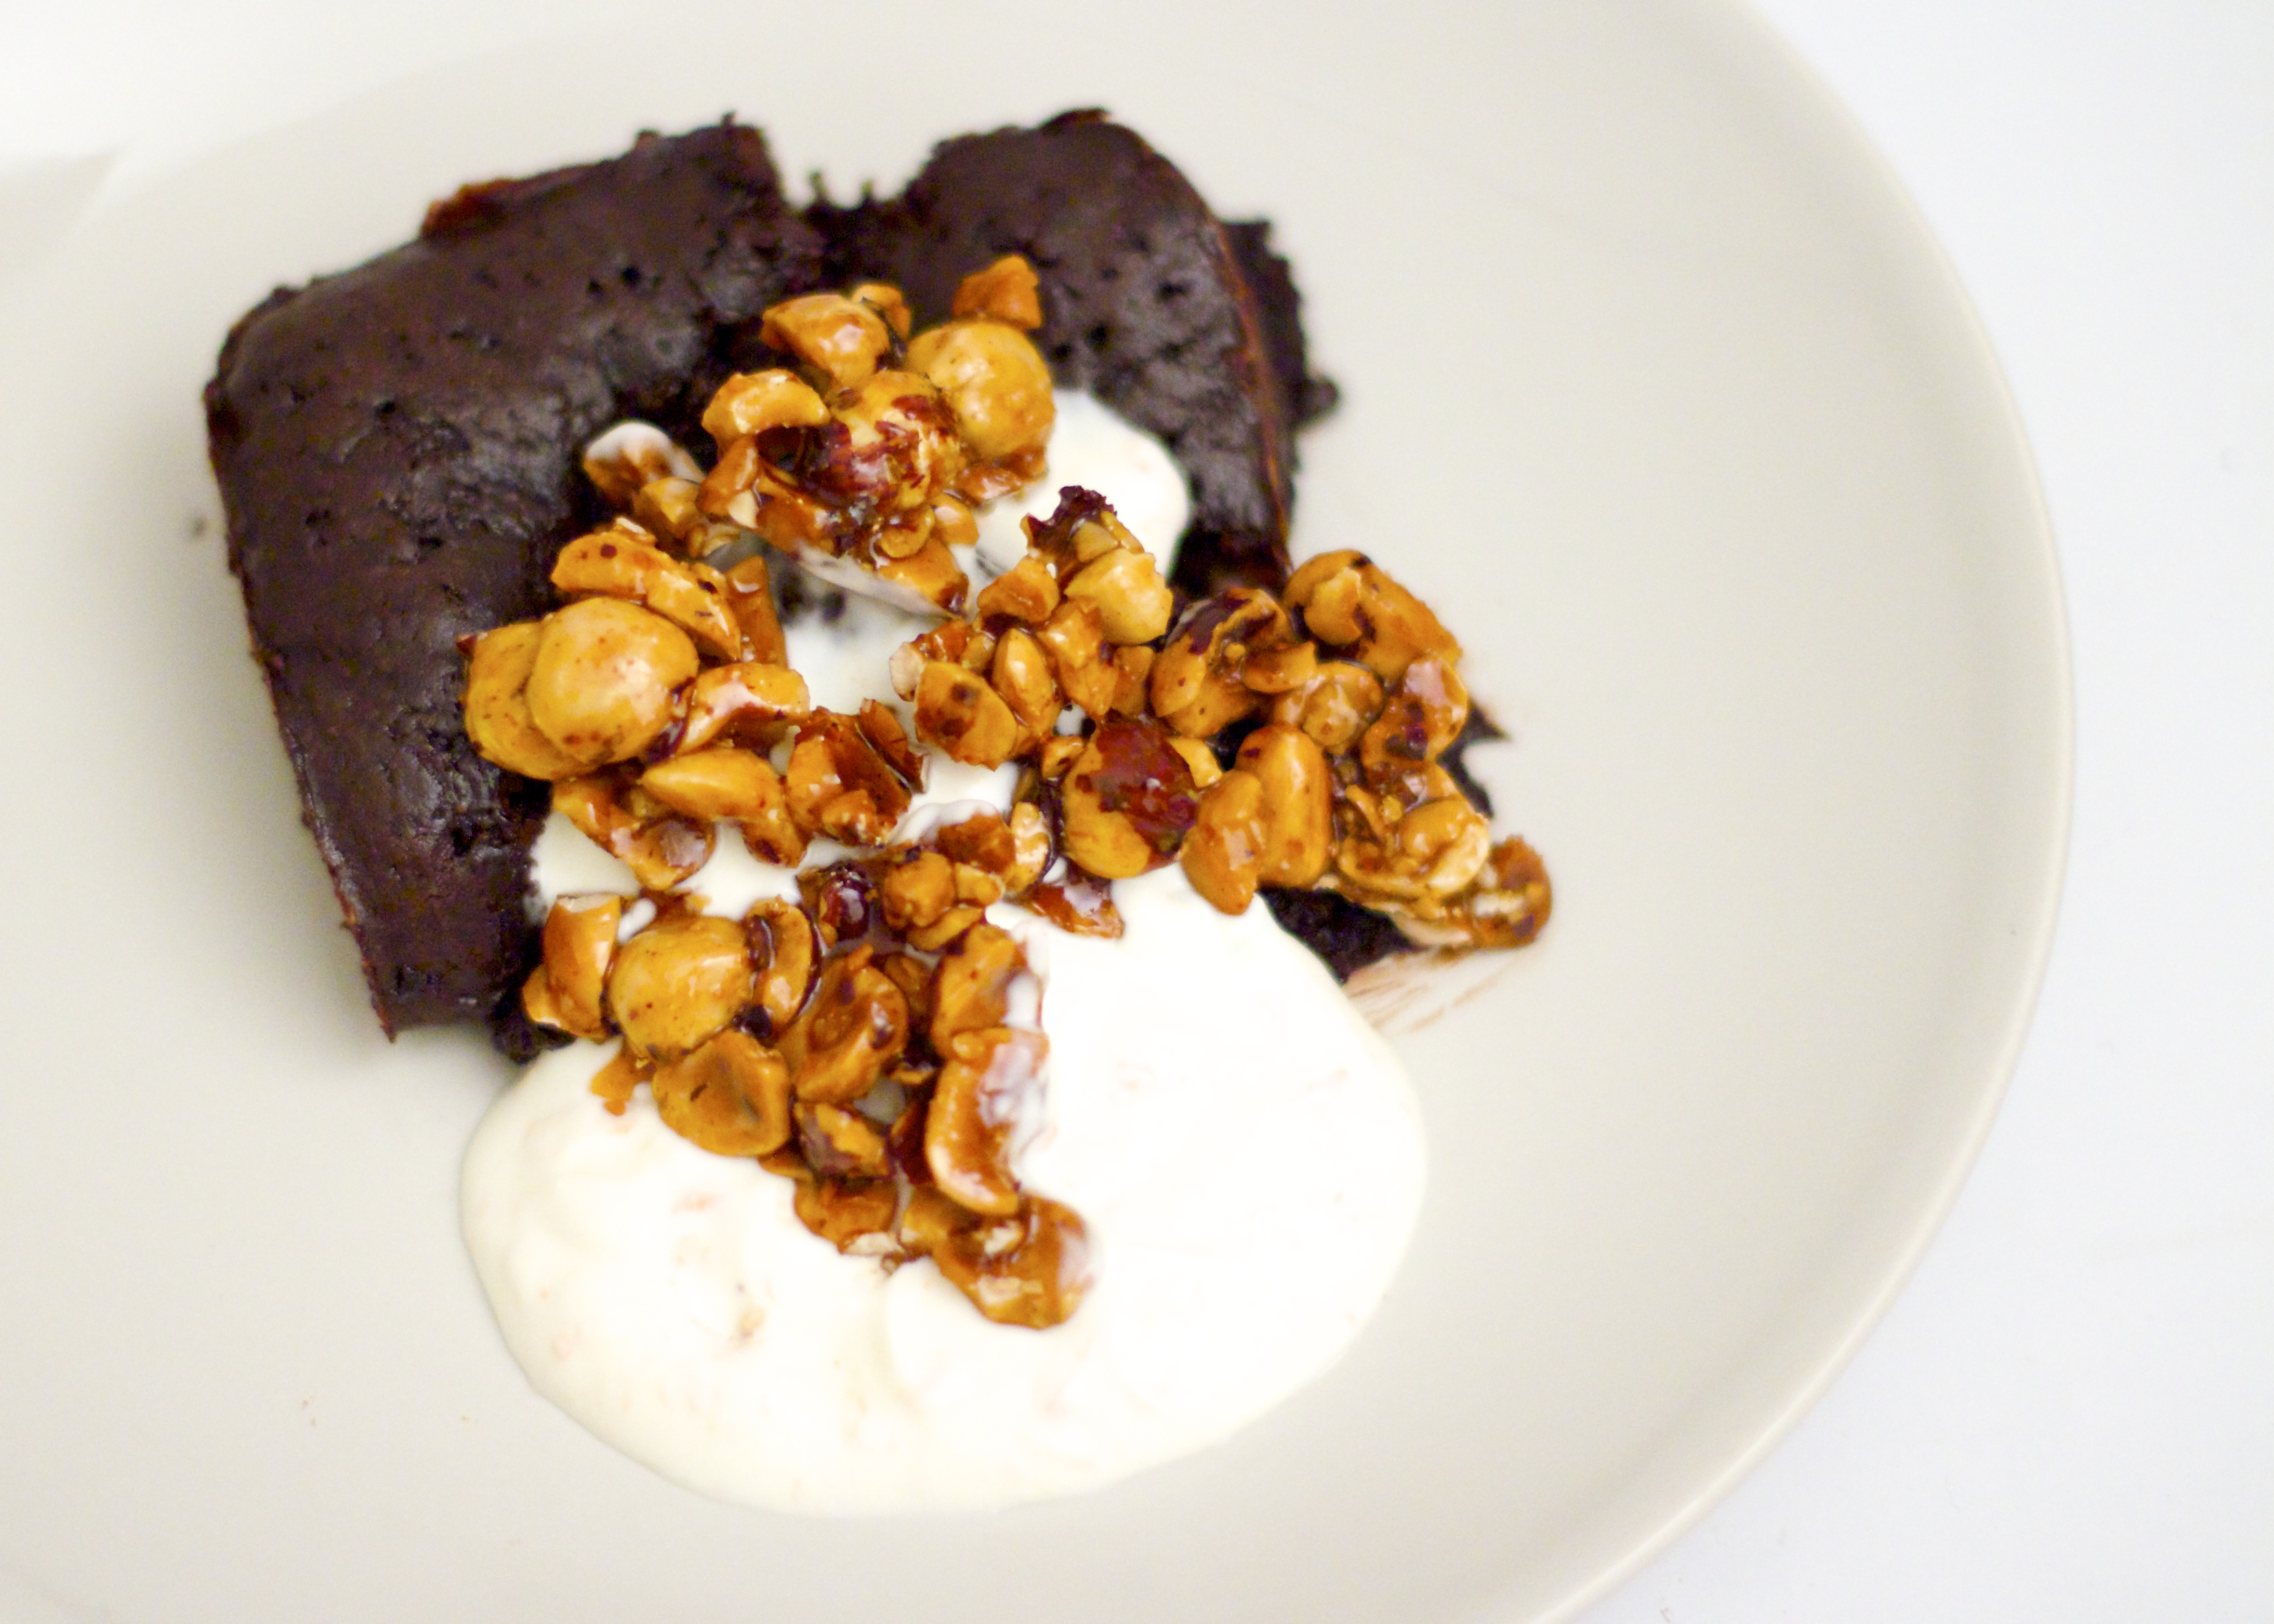 Nopi's Chocolate Cardamom Cake with Spiced Candied Hazelnuts & Orange Crème Fraîche